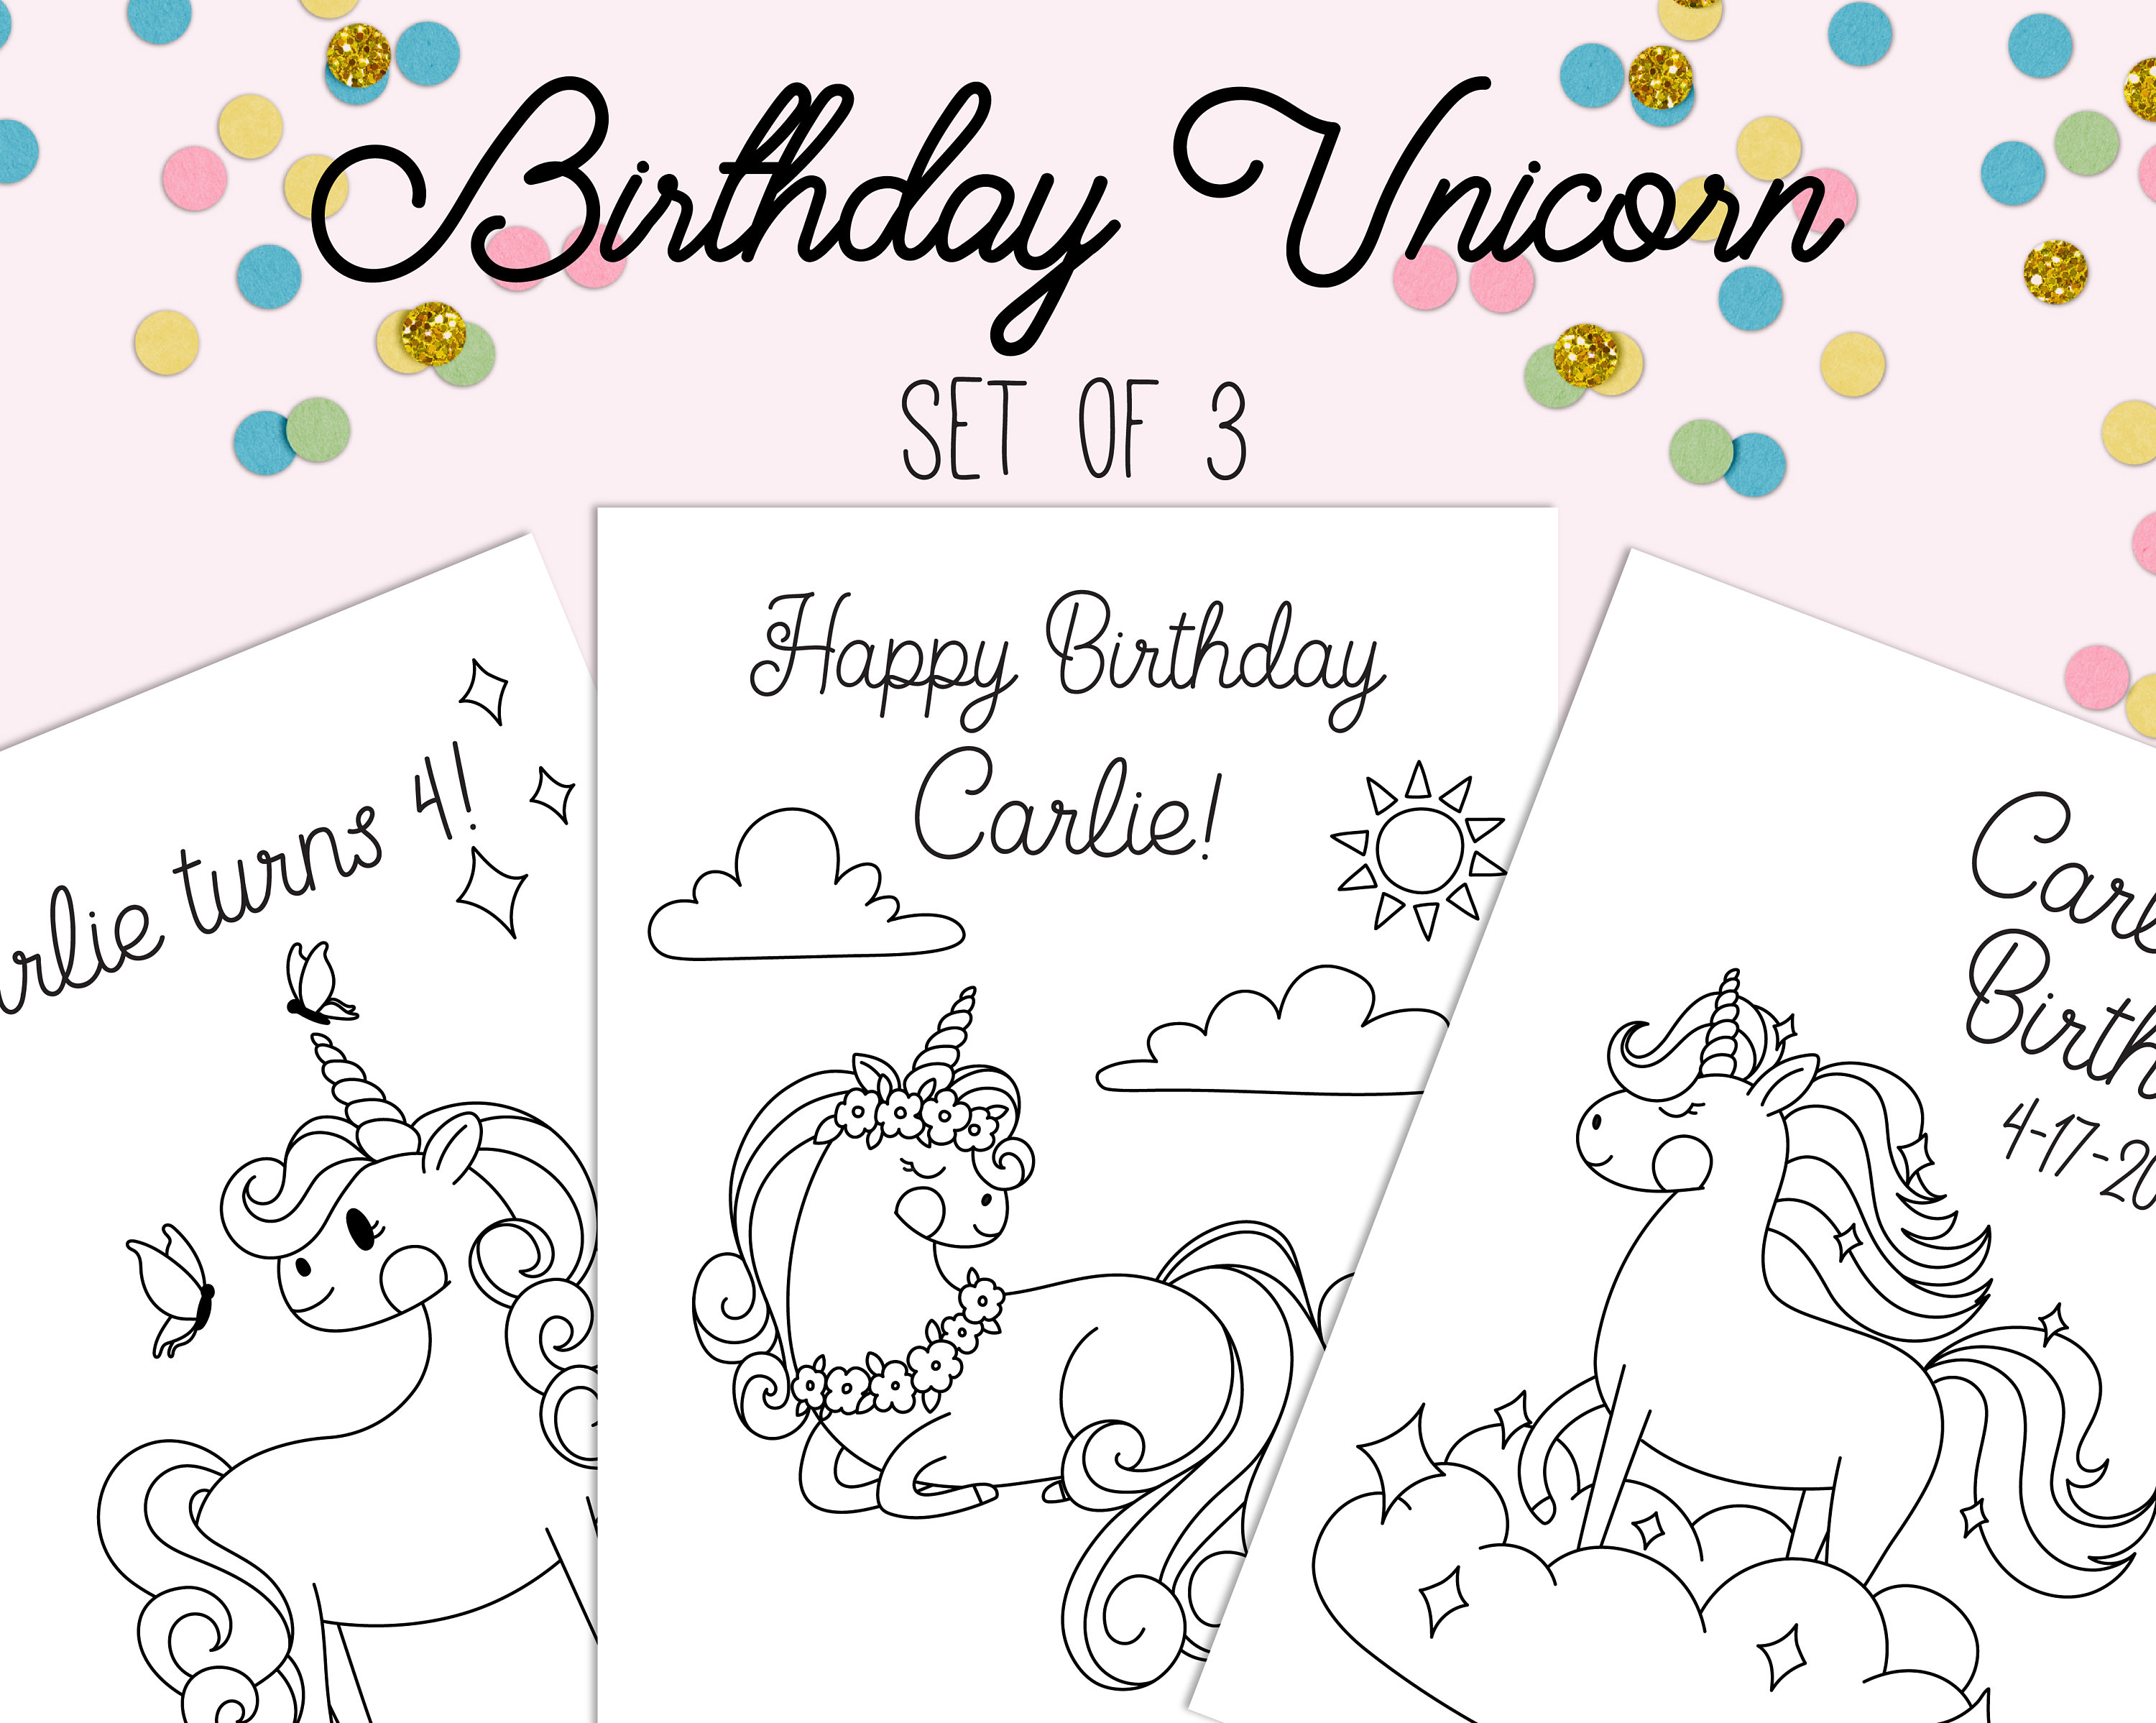 Unicorn Coloring Pages   Unicorn Birthday   Printable Coloring Page    Unicorn Party   Instant Download